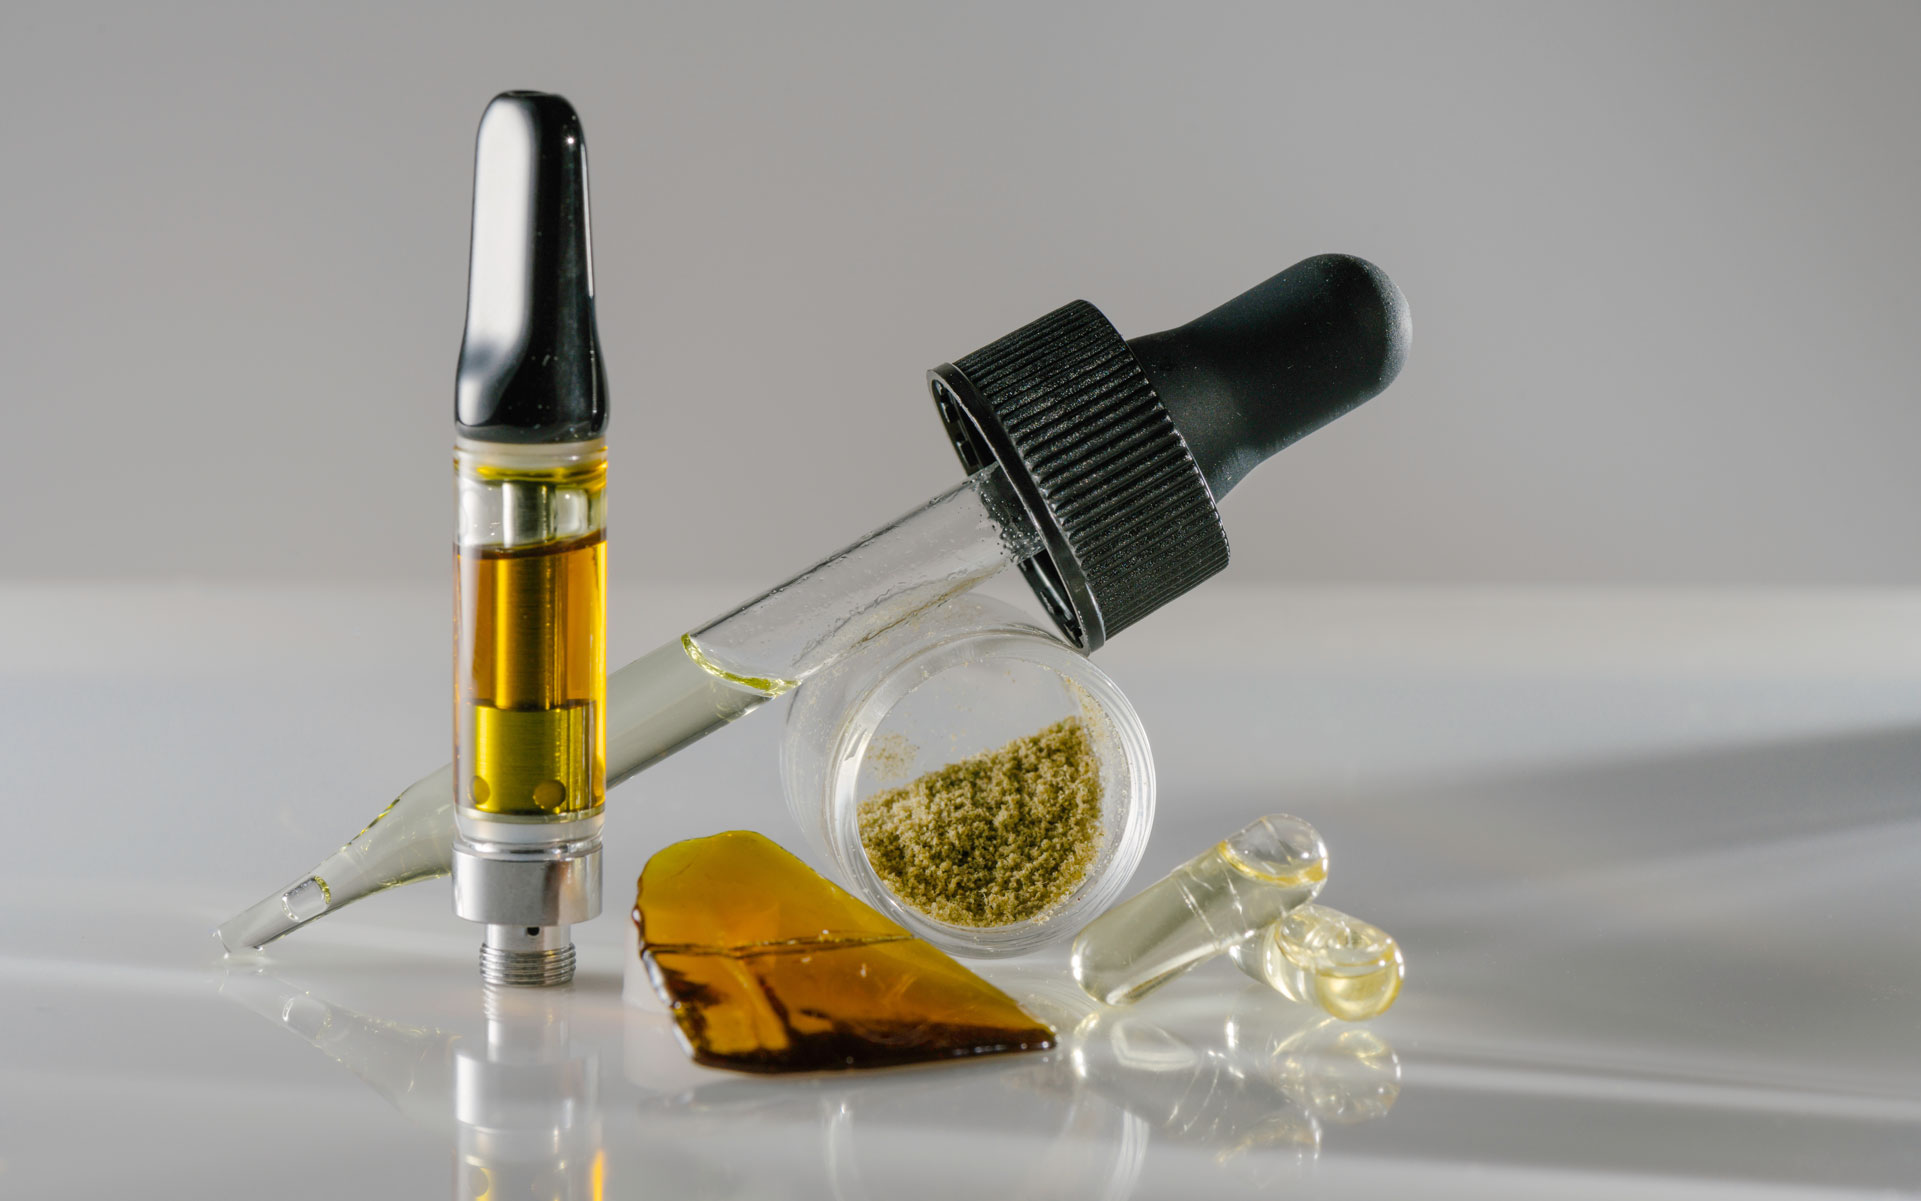 Cannabis oil and cancer